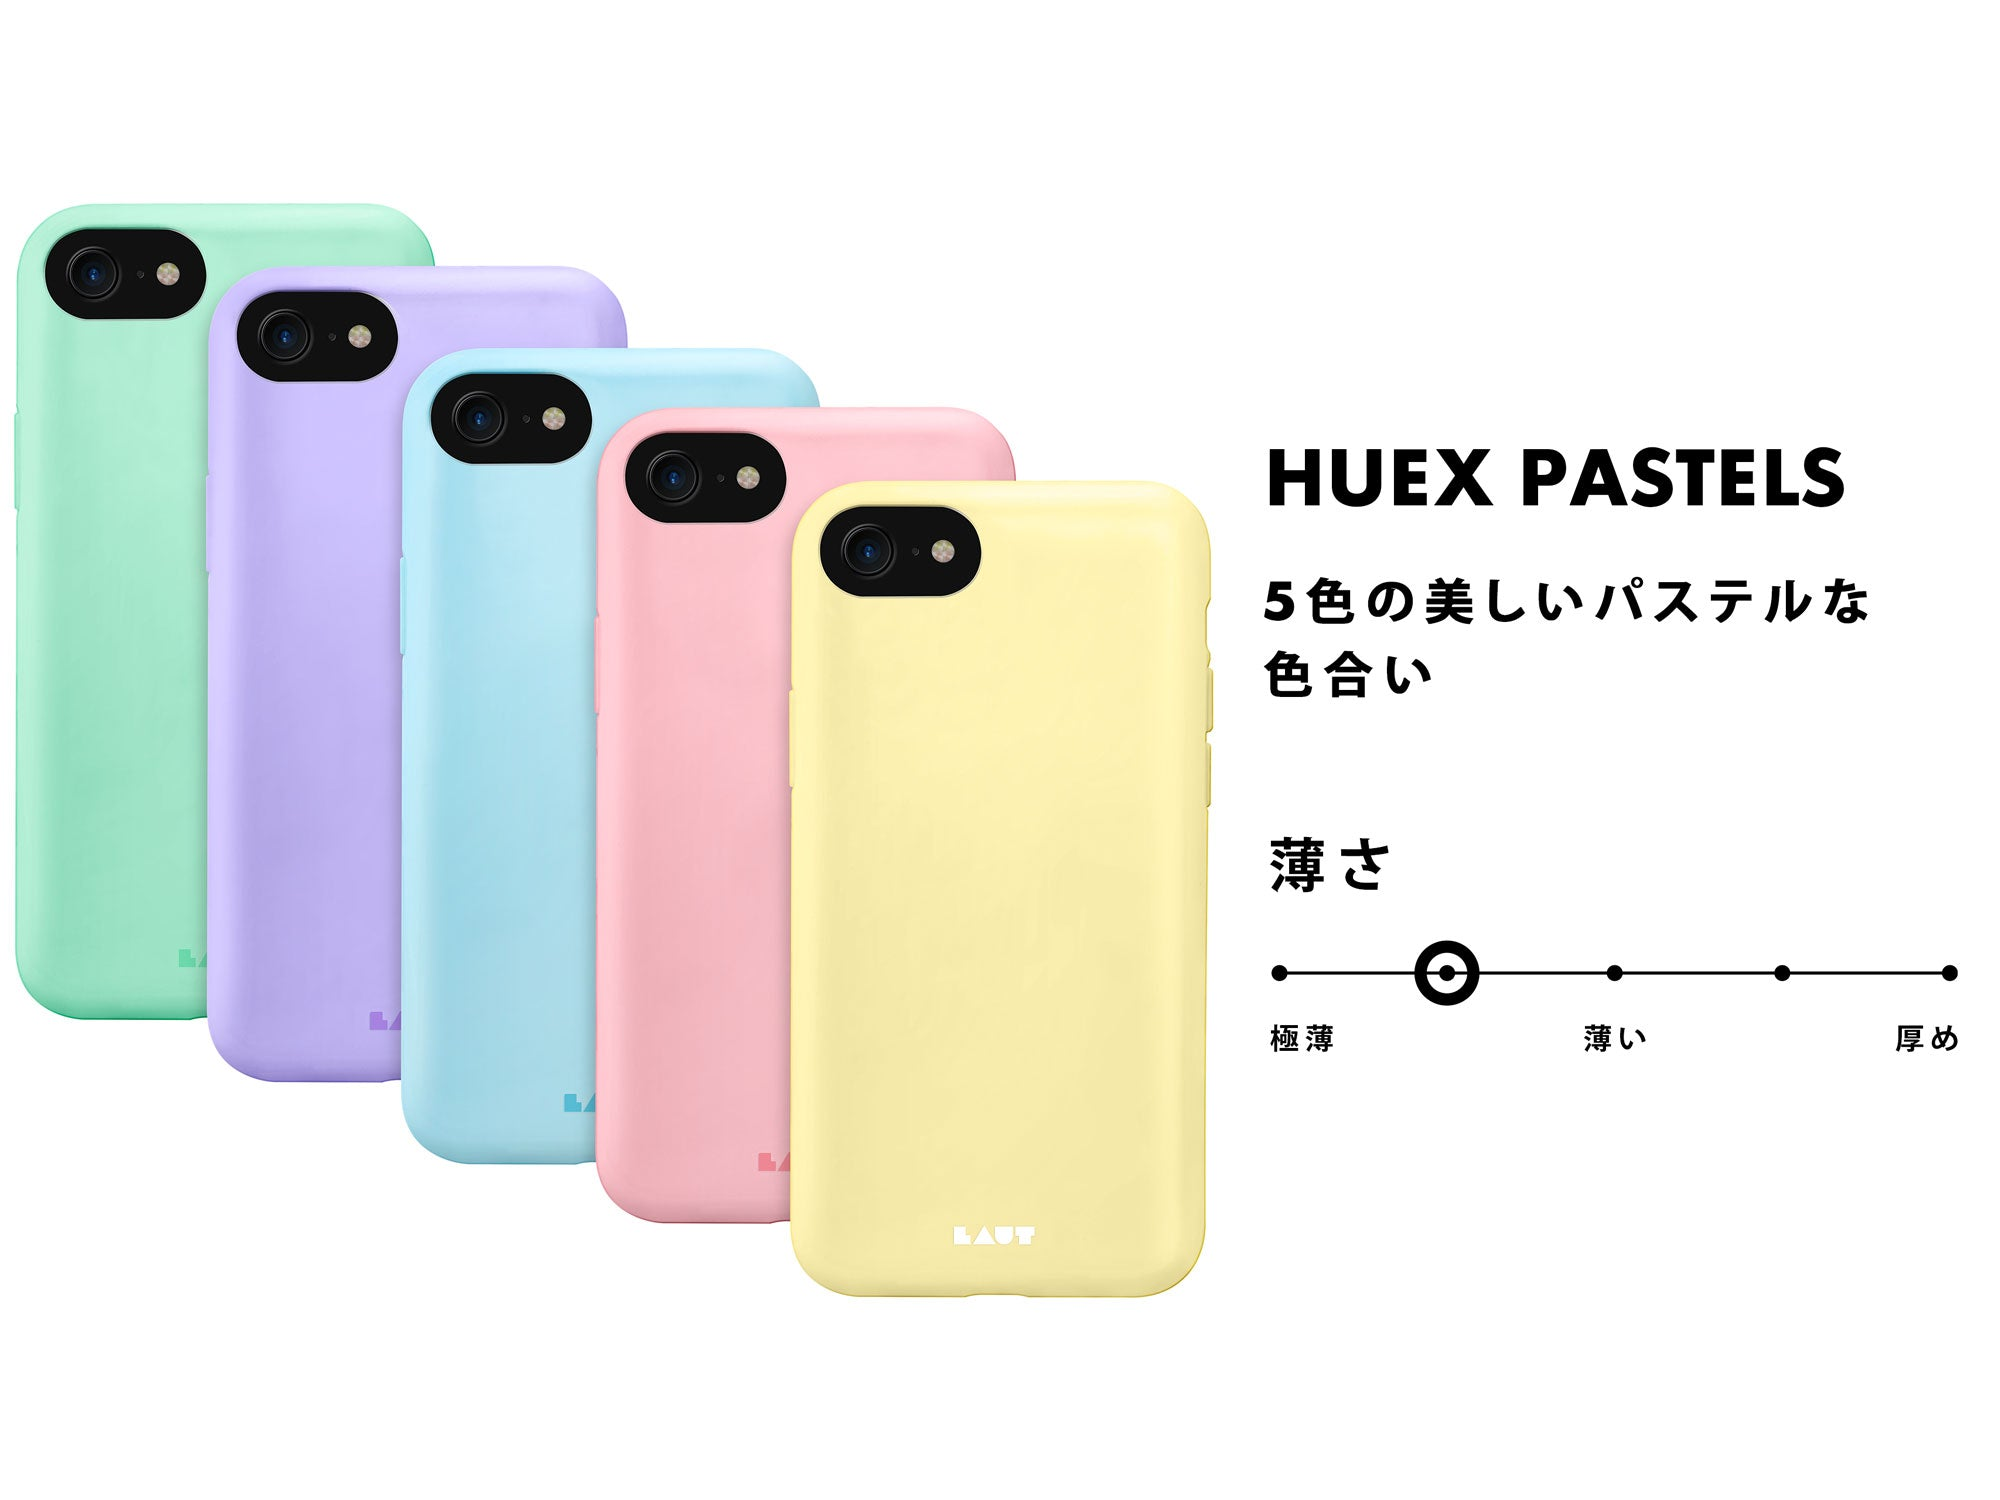 LAUT - HUEX Pastels for iPhone 9